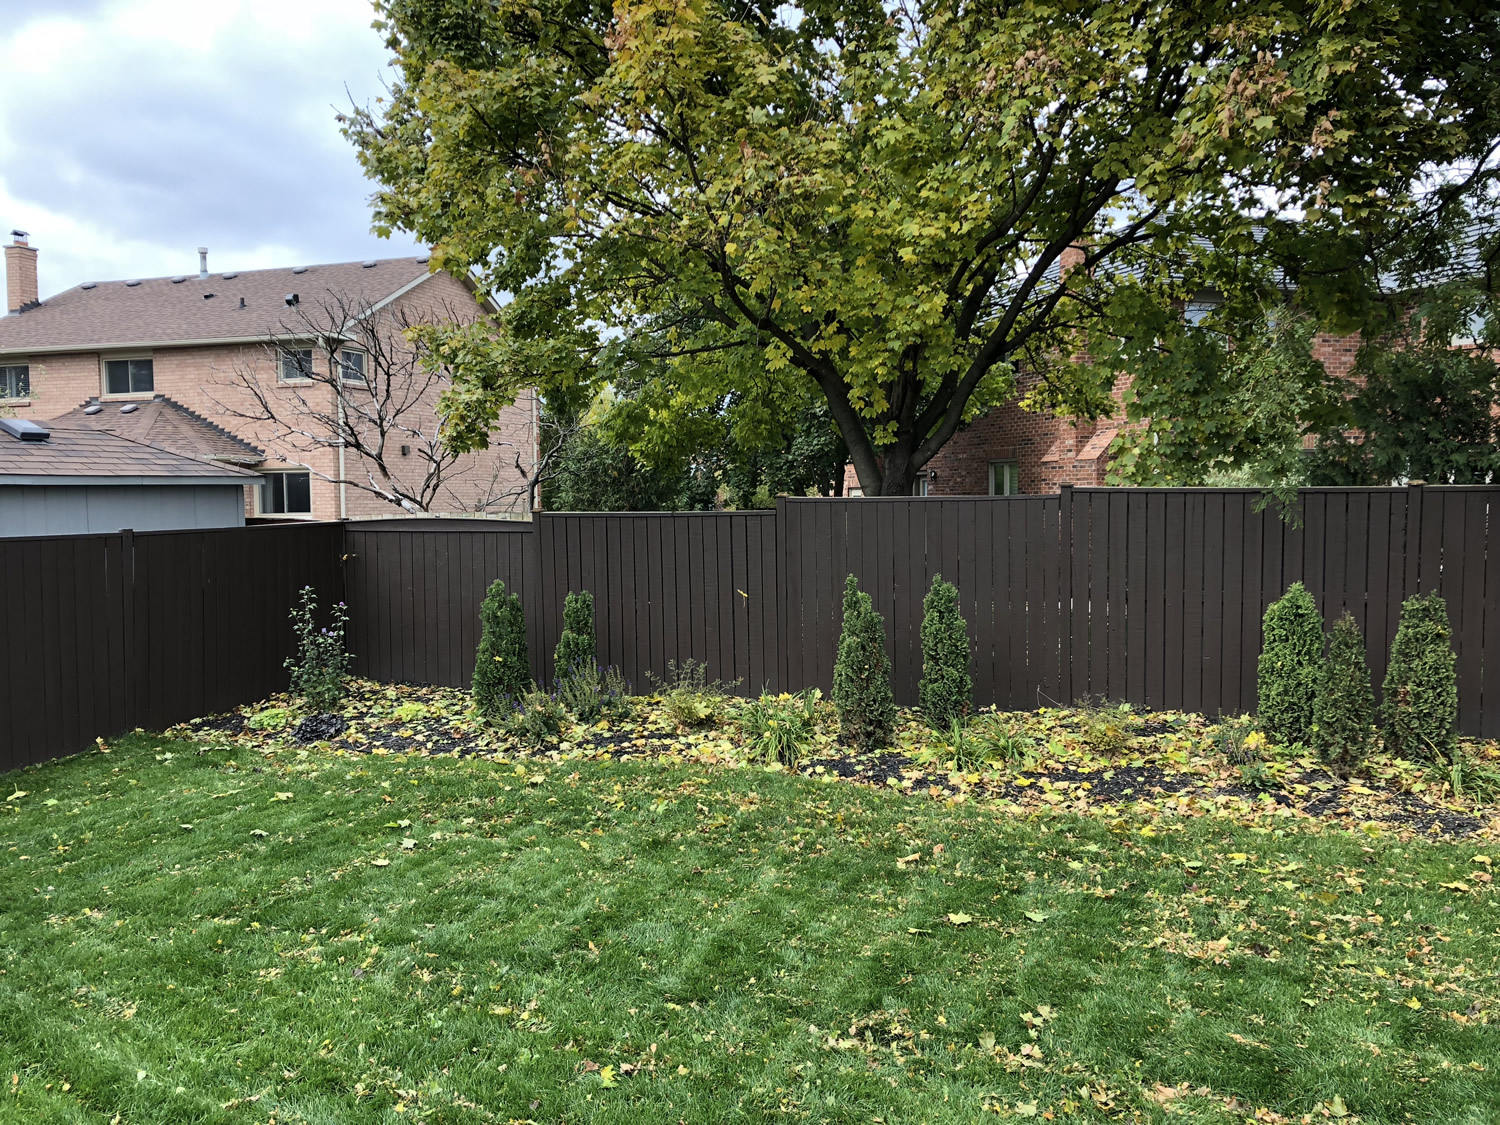 Back Yard After with Cedar Groupings and Mixed Perennials